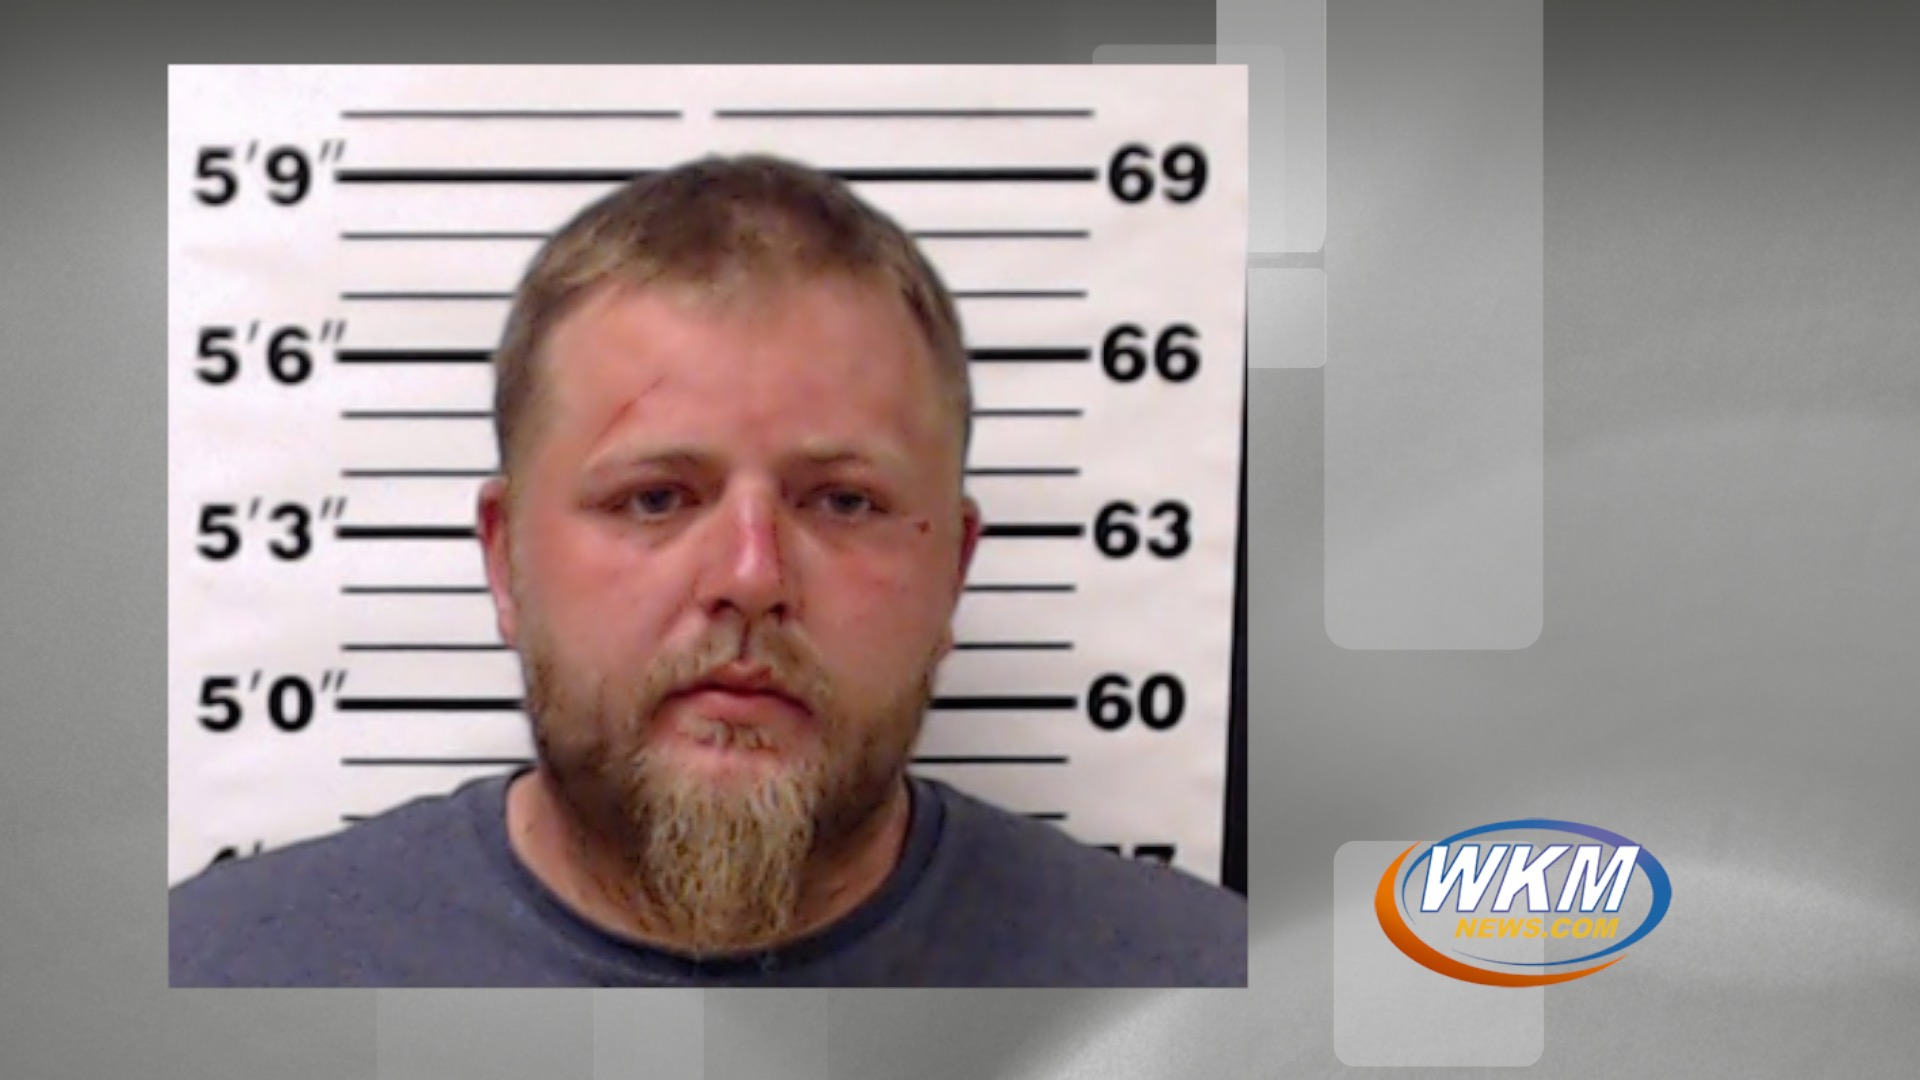 Madison Man Arrested on Public Nudity Charge